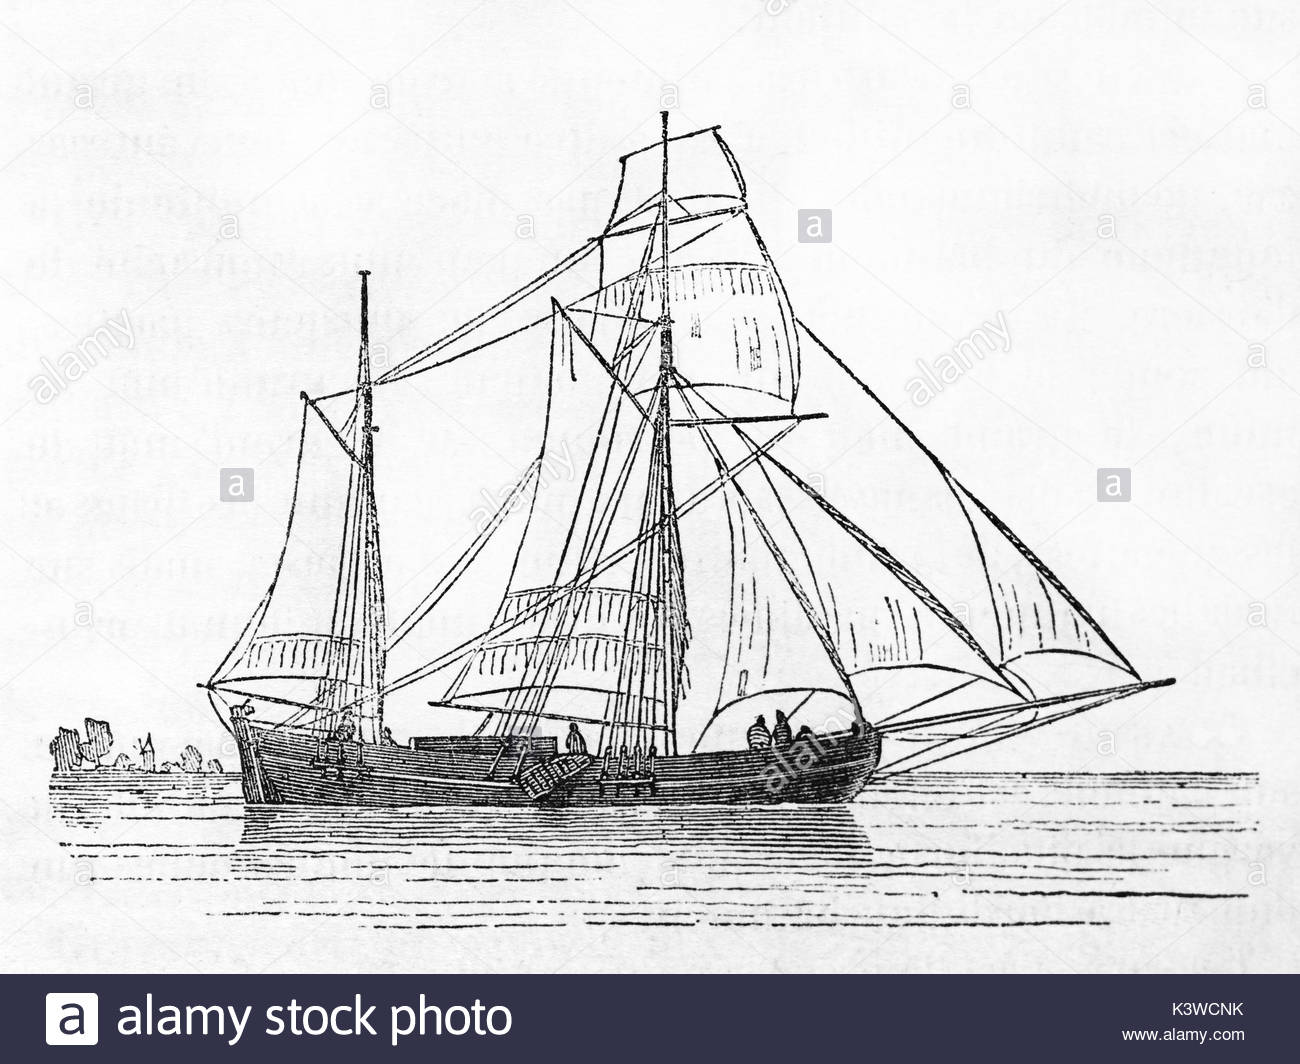 1300x1064 Old Illustration Of A Galiot, Dutch Trading Vessel. By